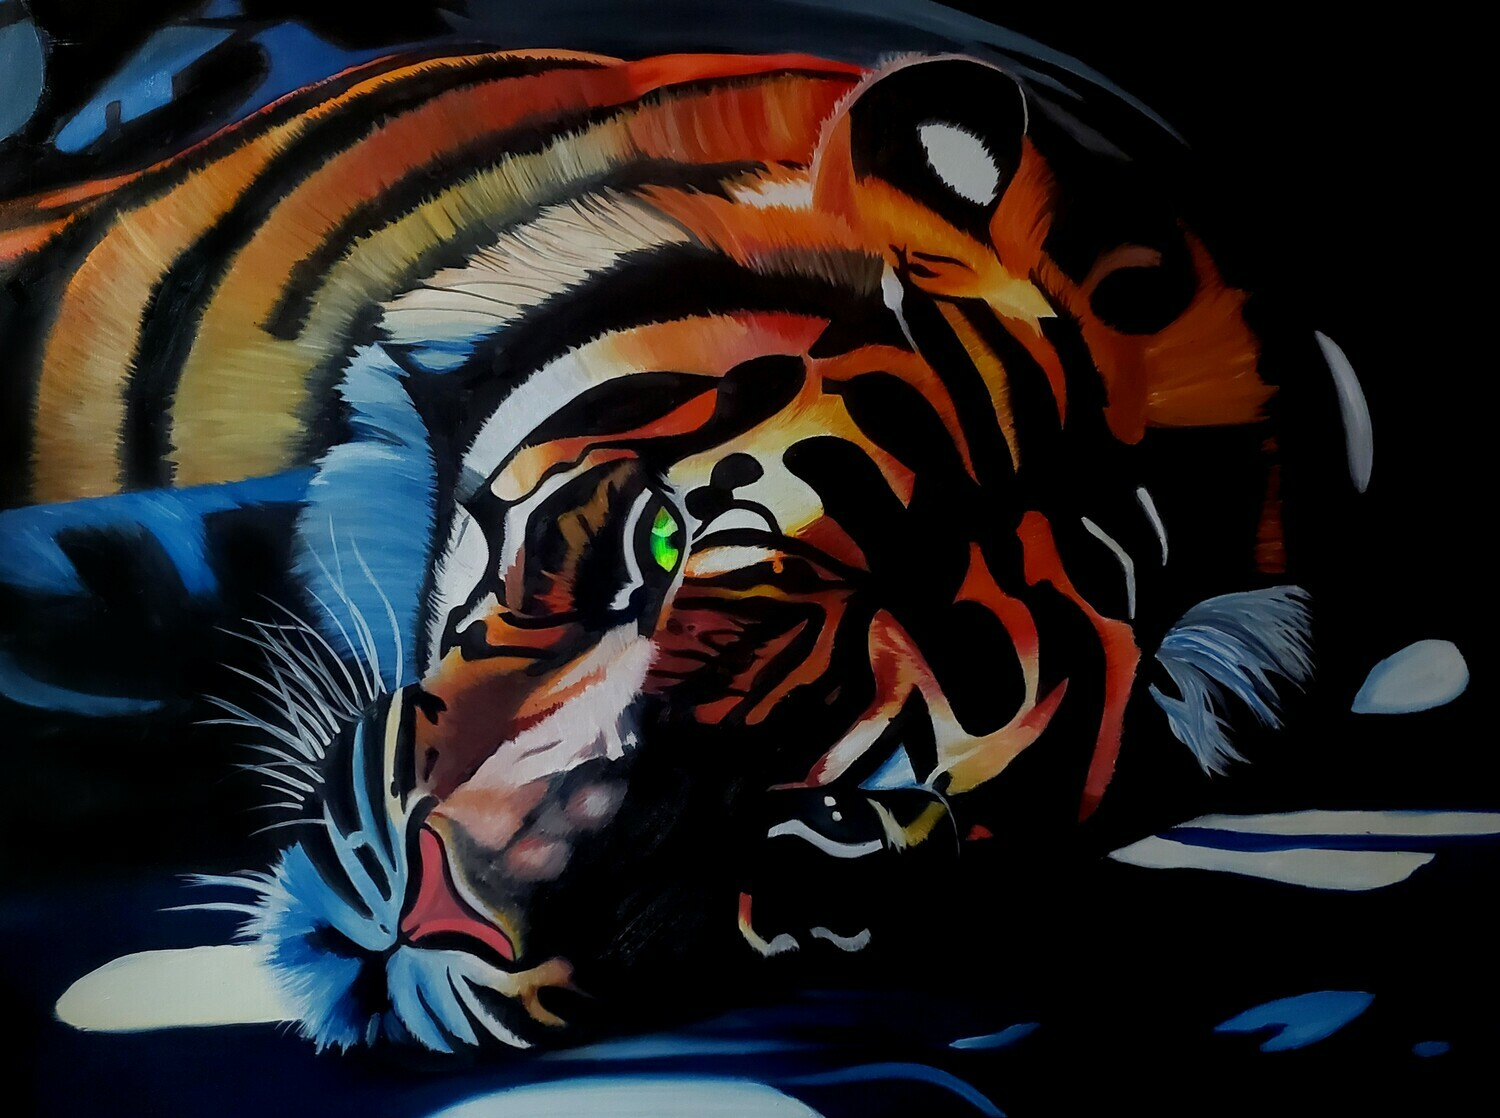 The Tiger King